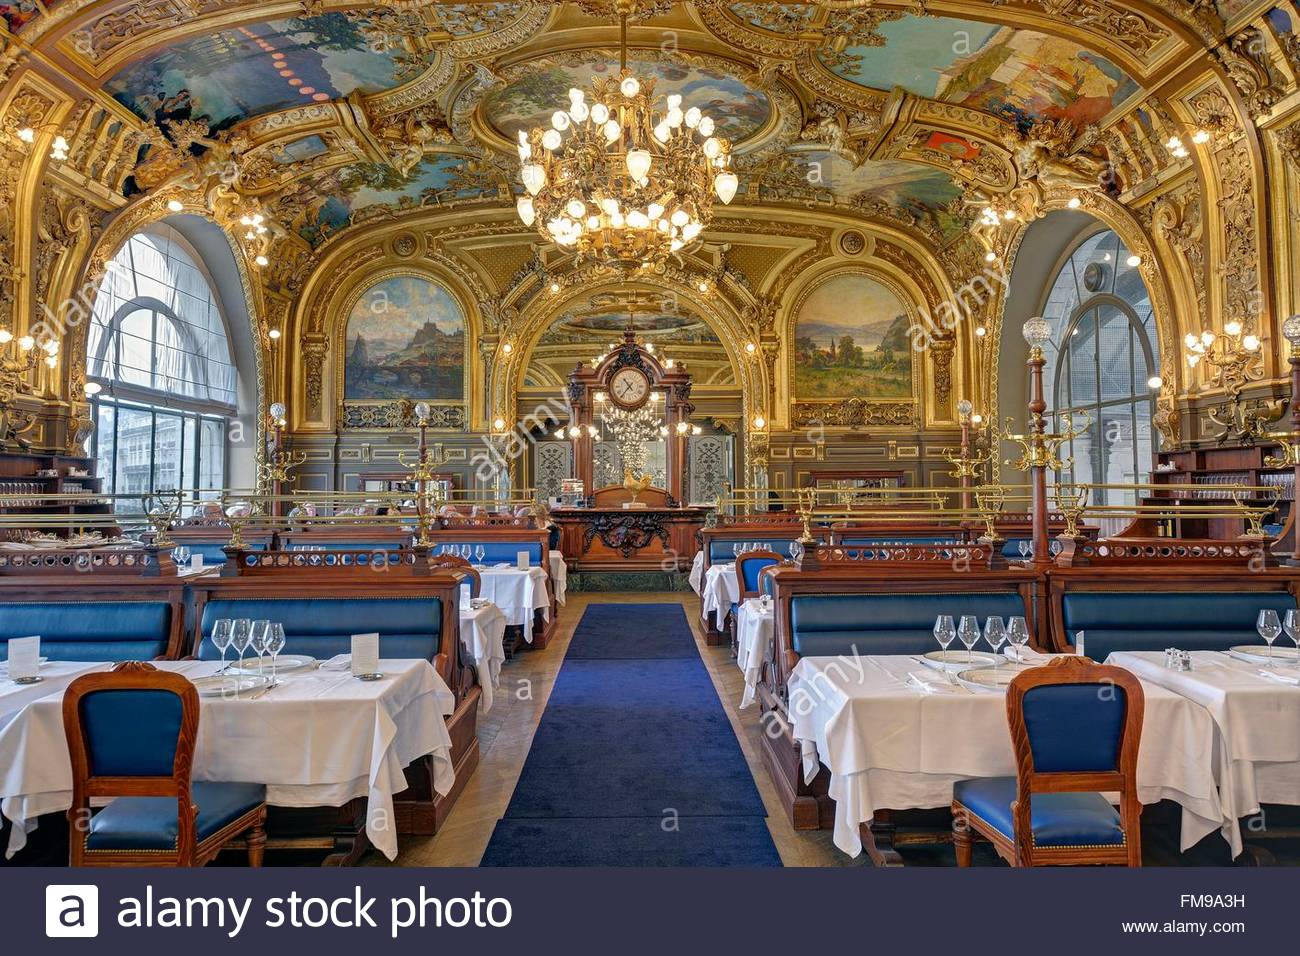 Souvent France, Paris, gare de Lyon (Lyon railway station), Le train Bleu  KY01